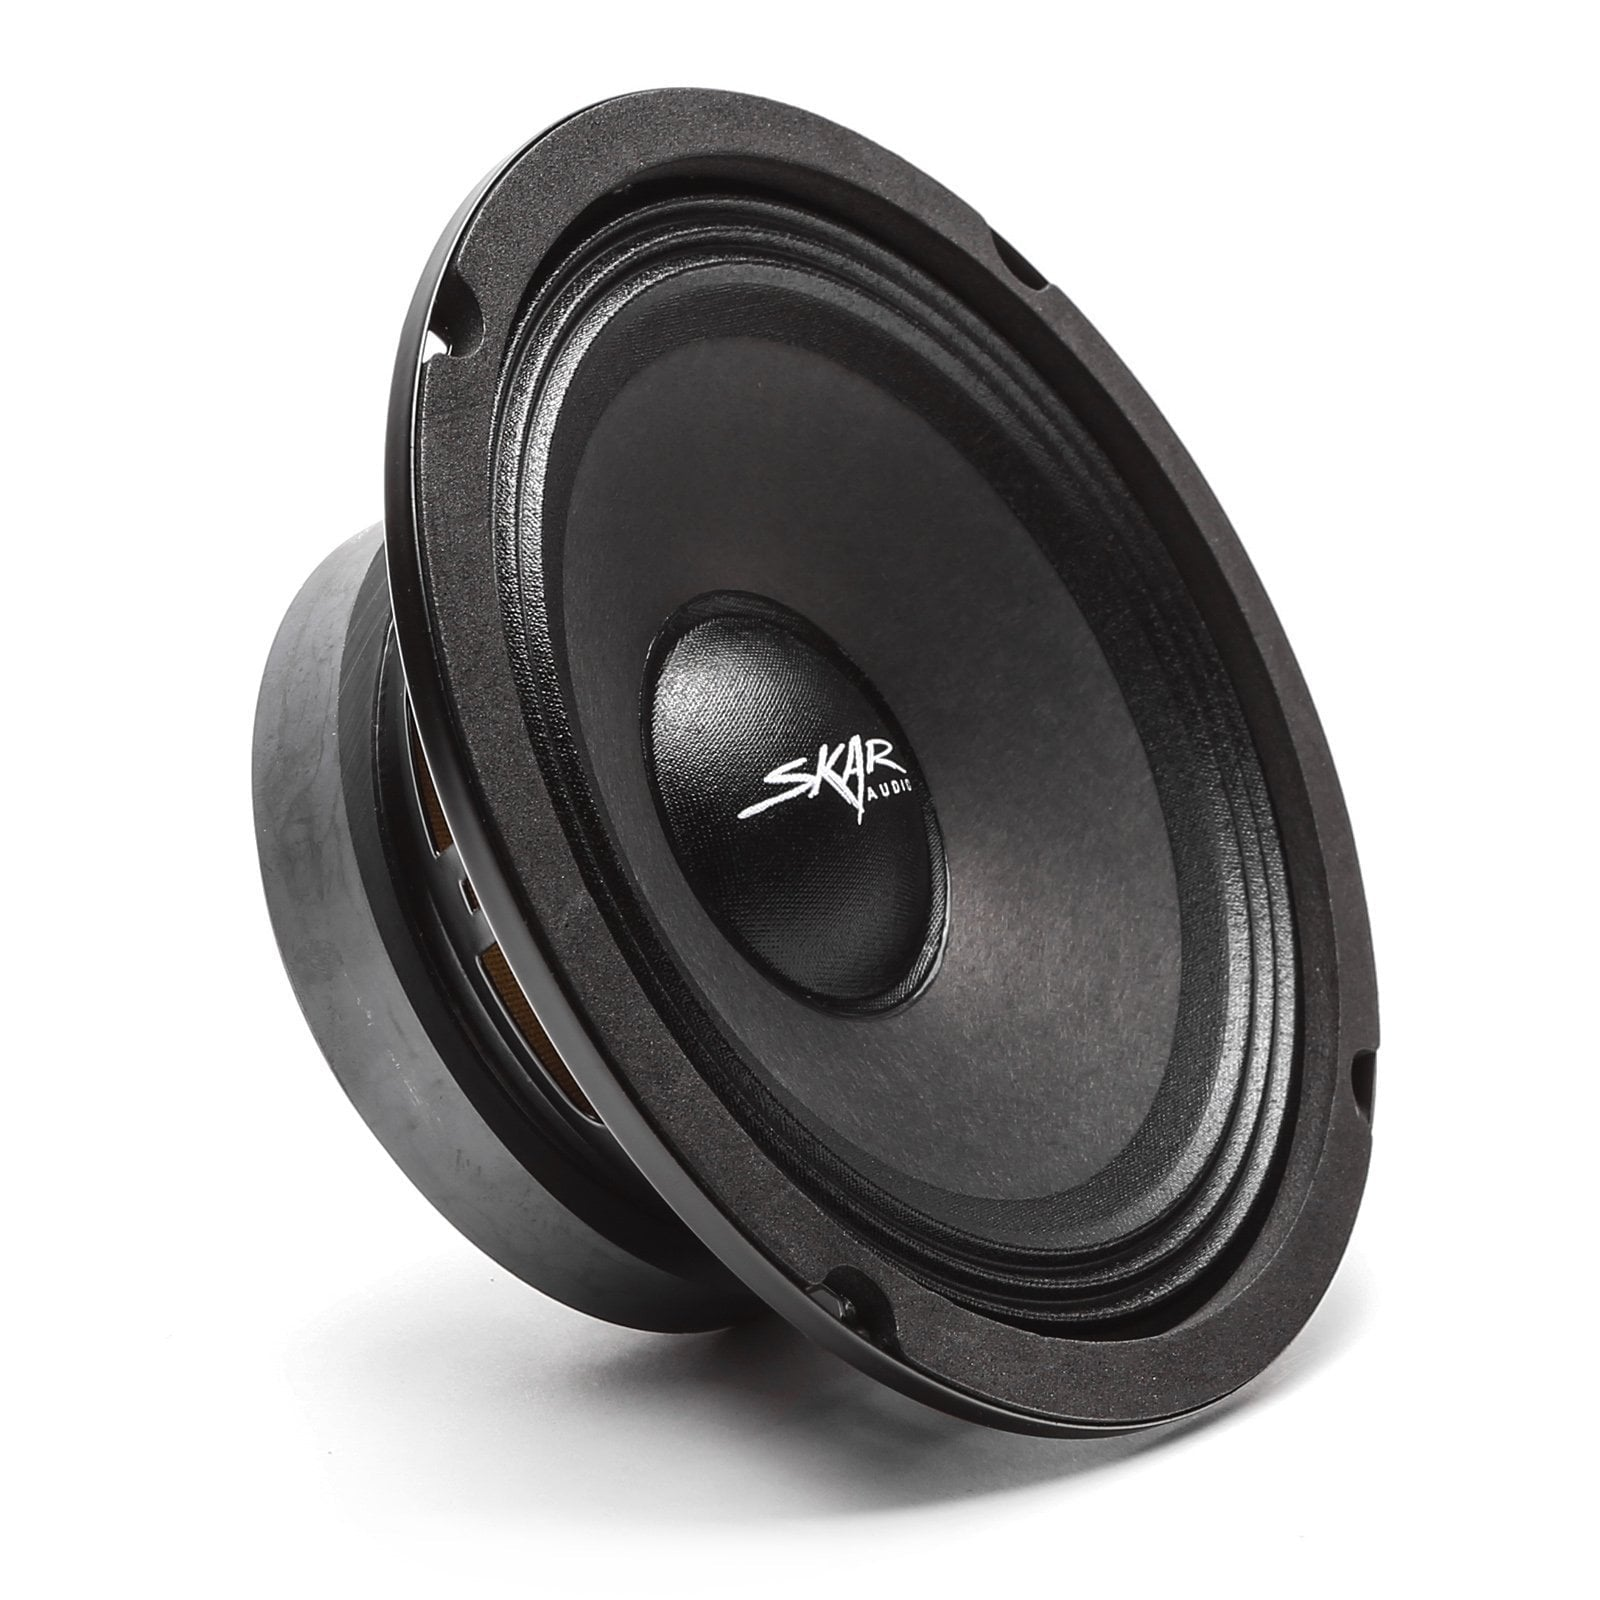 Skar Audio FSX65 6.5-inch 400 Watt Max Power Mid-Range Loudspeaker - Angle View